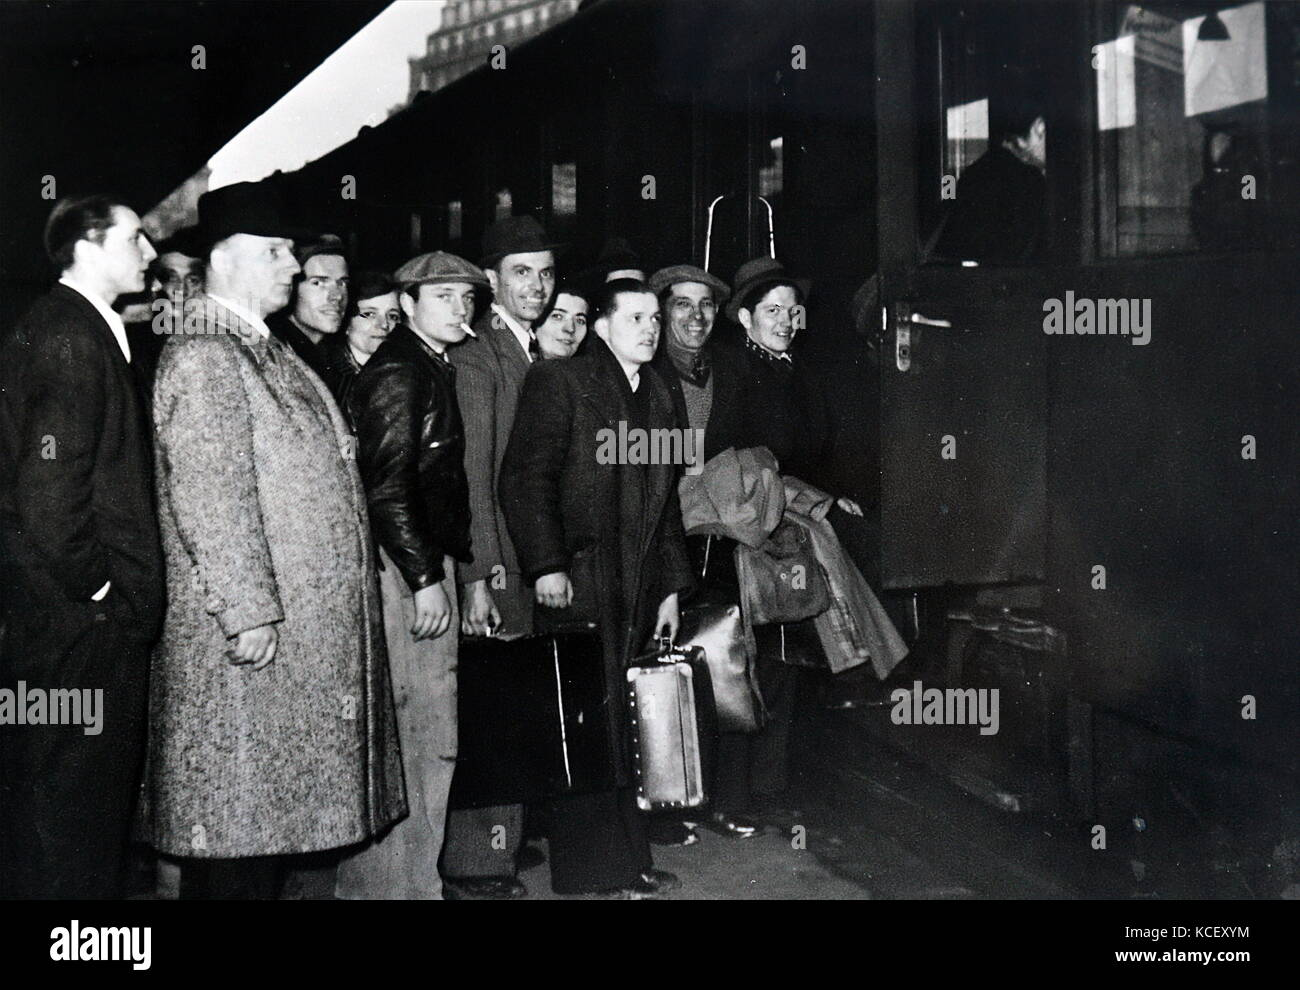 Photograph of young French men travelling by train to enlist in the military during the invasion of France in World - Stock Image